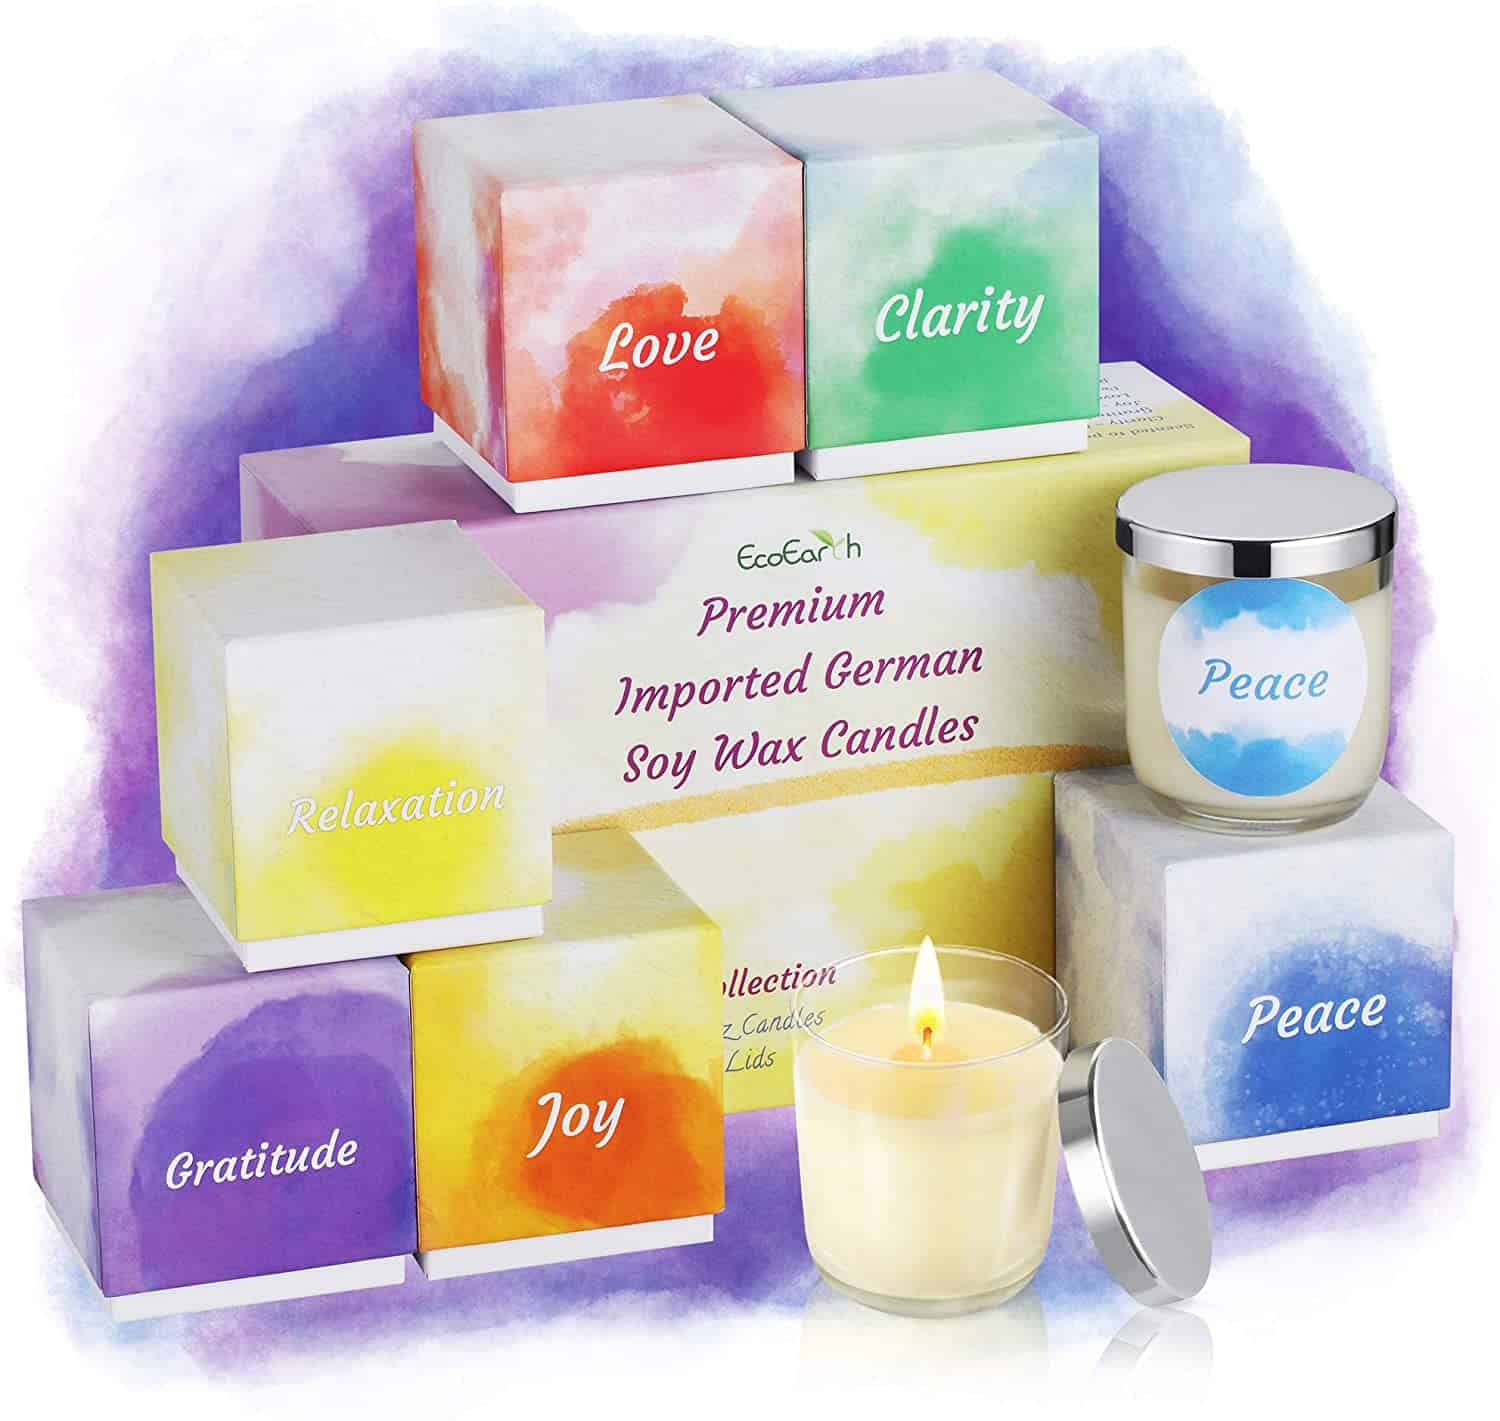 intention candles - self-care tips - self care advice